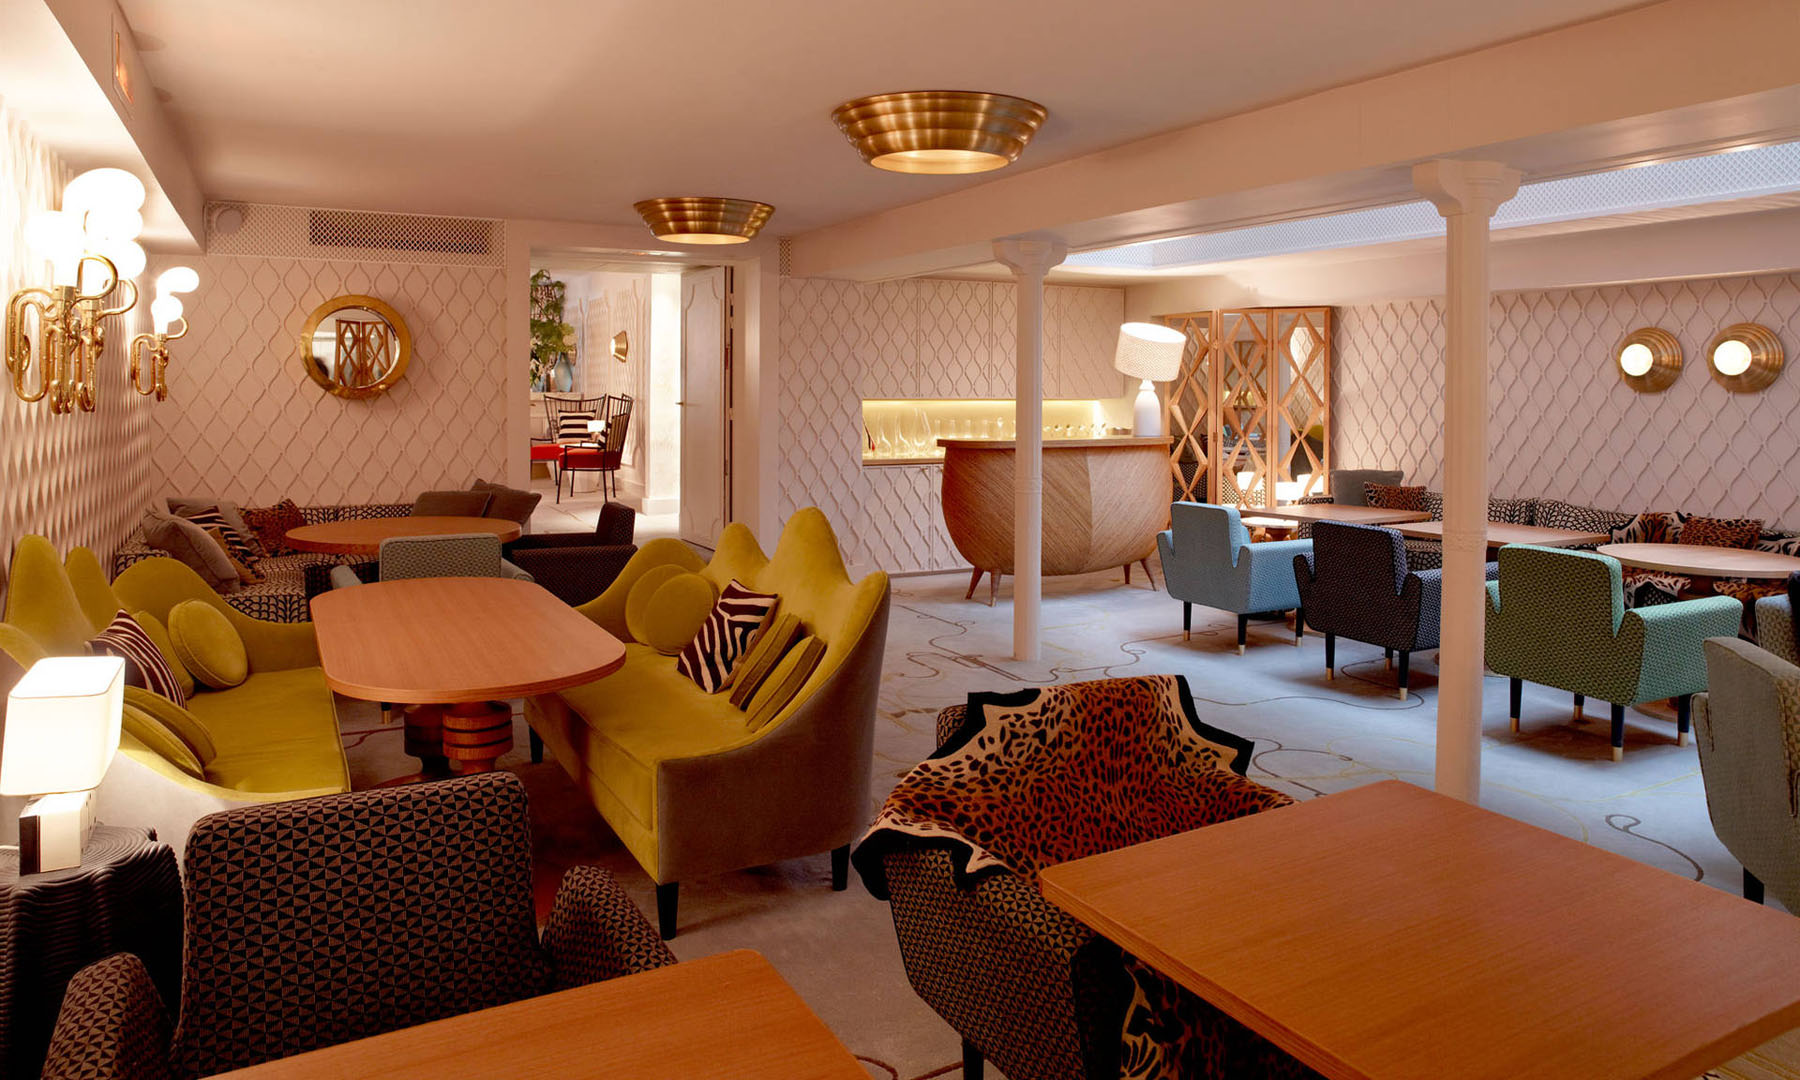 french brasserie chairs dark brown leather accent chair art deco interior design by india mahdavi at hotel thoumieux paris | idesignarch ...